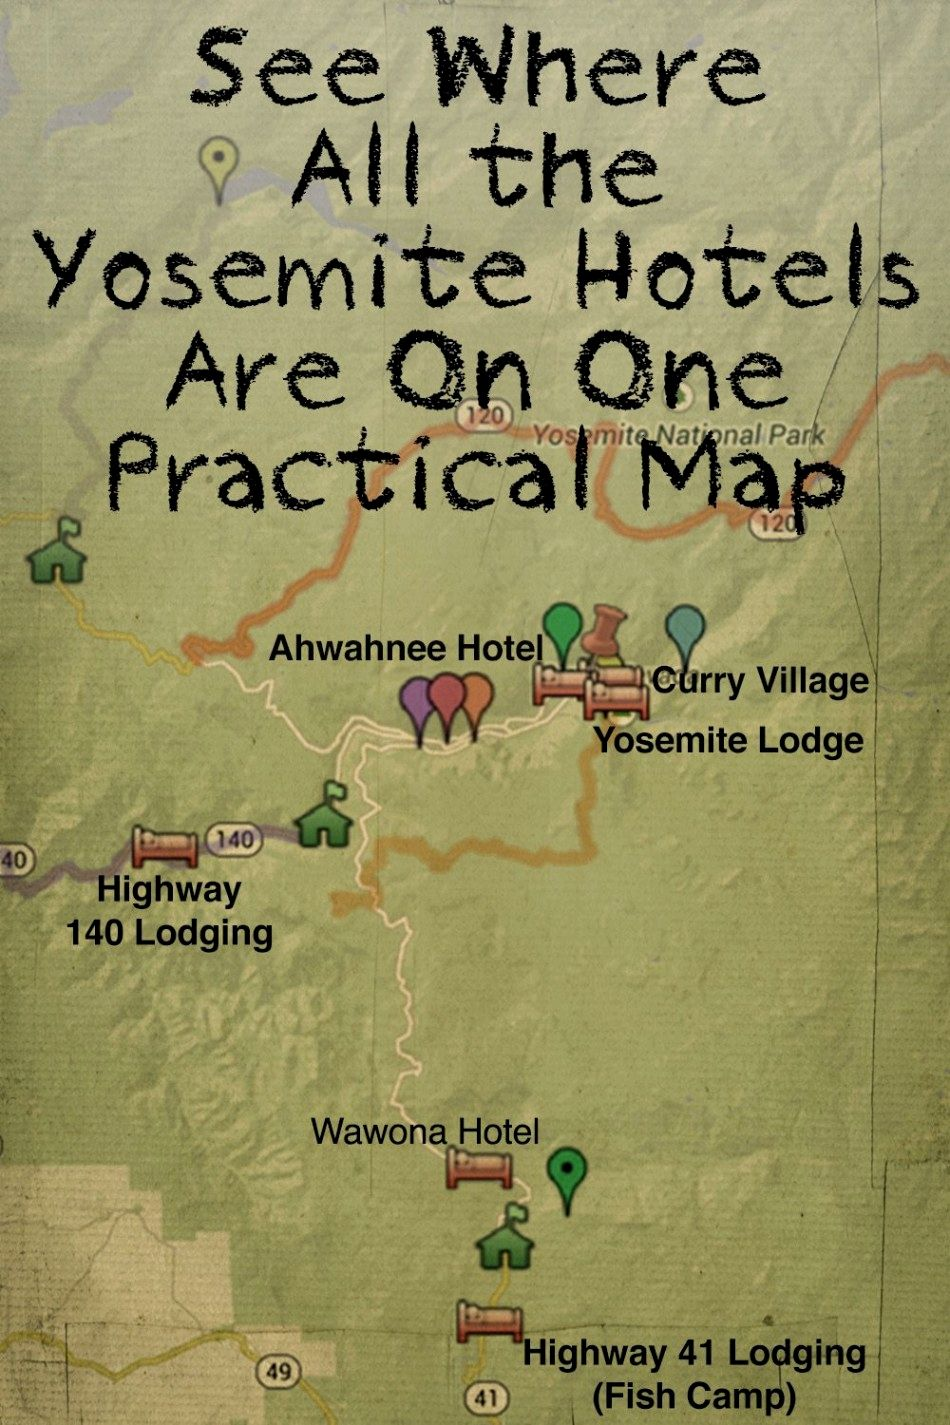 The best things you can do for any vacation would be to go on a west Yosemite Hotel Map on yosemite lost brother, yosemite history, yosemite flowers, yosemite trails, yosemite in april, yosemite fishing, yosemite point, yosemite wildflowers, yosemite national location, yosemite cedar lodge rooms, yosemite in october, yosemite deaths, yosemite beach, yosemite swimming, yosemite screenshots, yosemite ahwahnee cottages, yosemite restaurants, yosemite accommodations, yosemite rafting, yosemite curry village cabins interior,